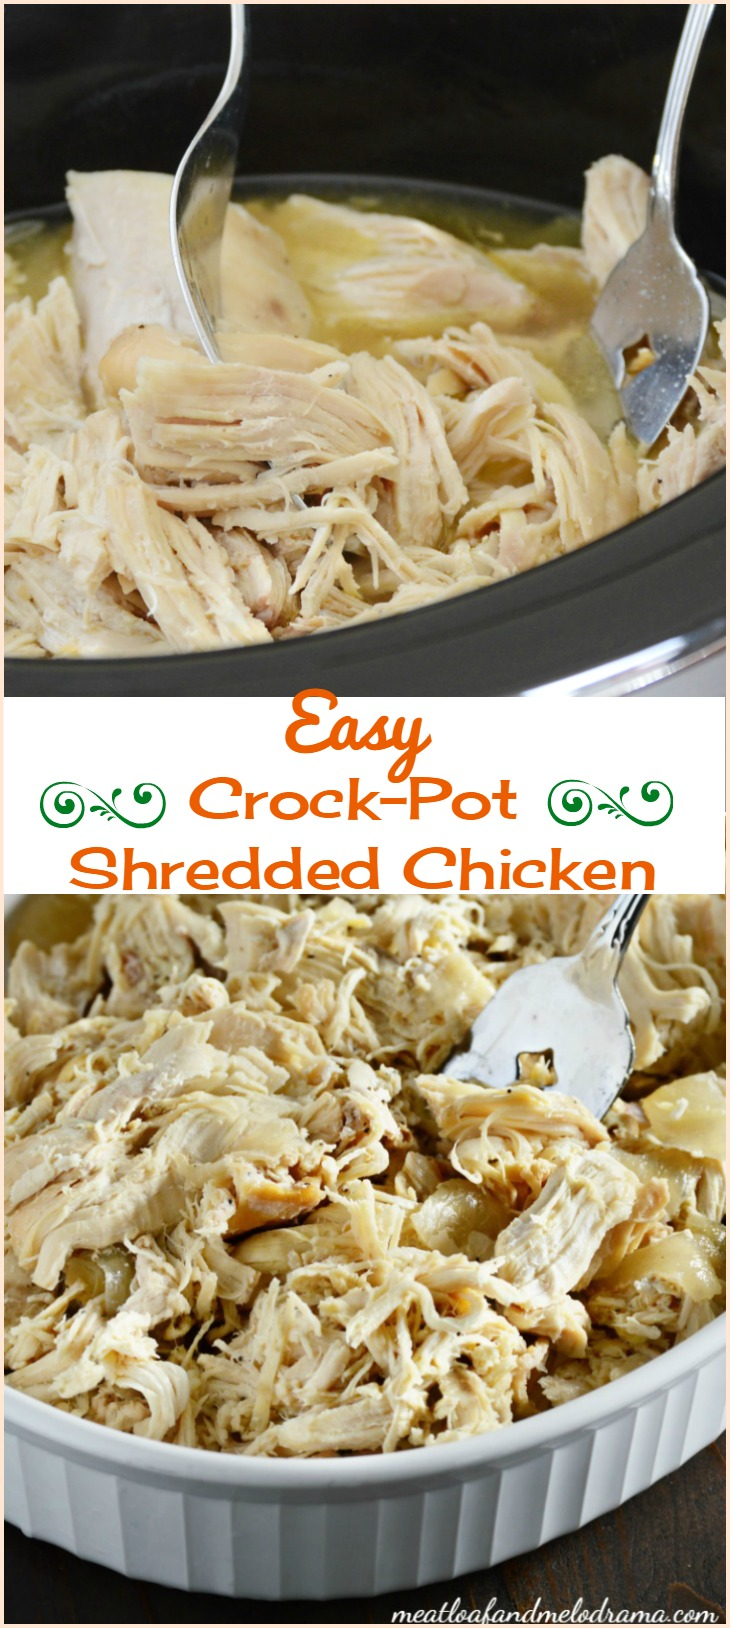 Mar 19,  · Crock Pot Chicken and Rice is one of our favorite healthy crock pot meals. Juicy chicken, fresh veggies, and brown rice cooked together in a simple creamy sauce. This easy slow cooker recipe is made with real ingredients (no cream of mushroom or cream of /5(22).